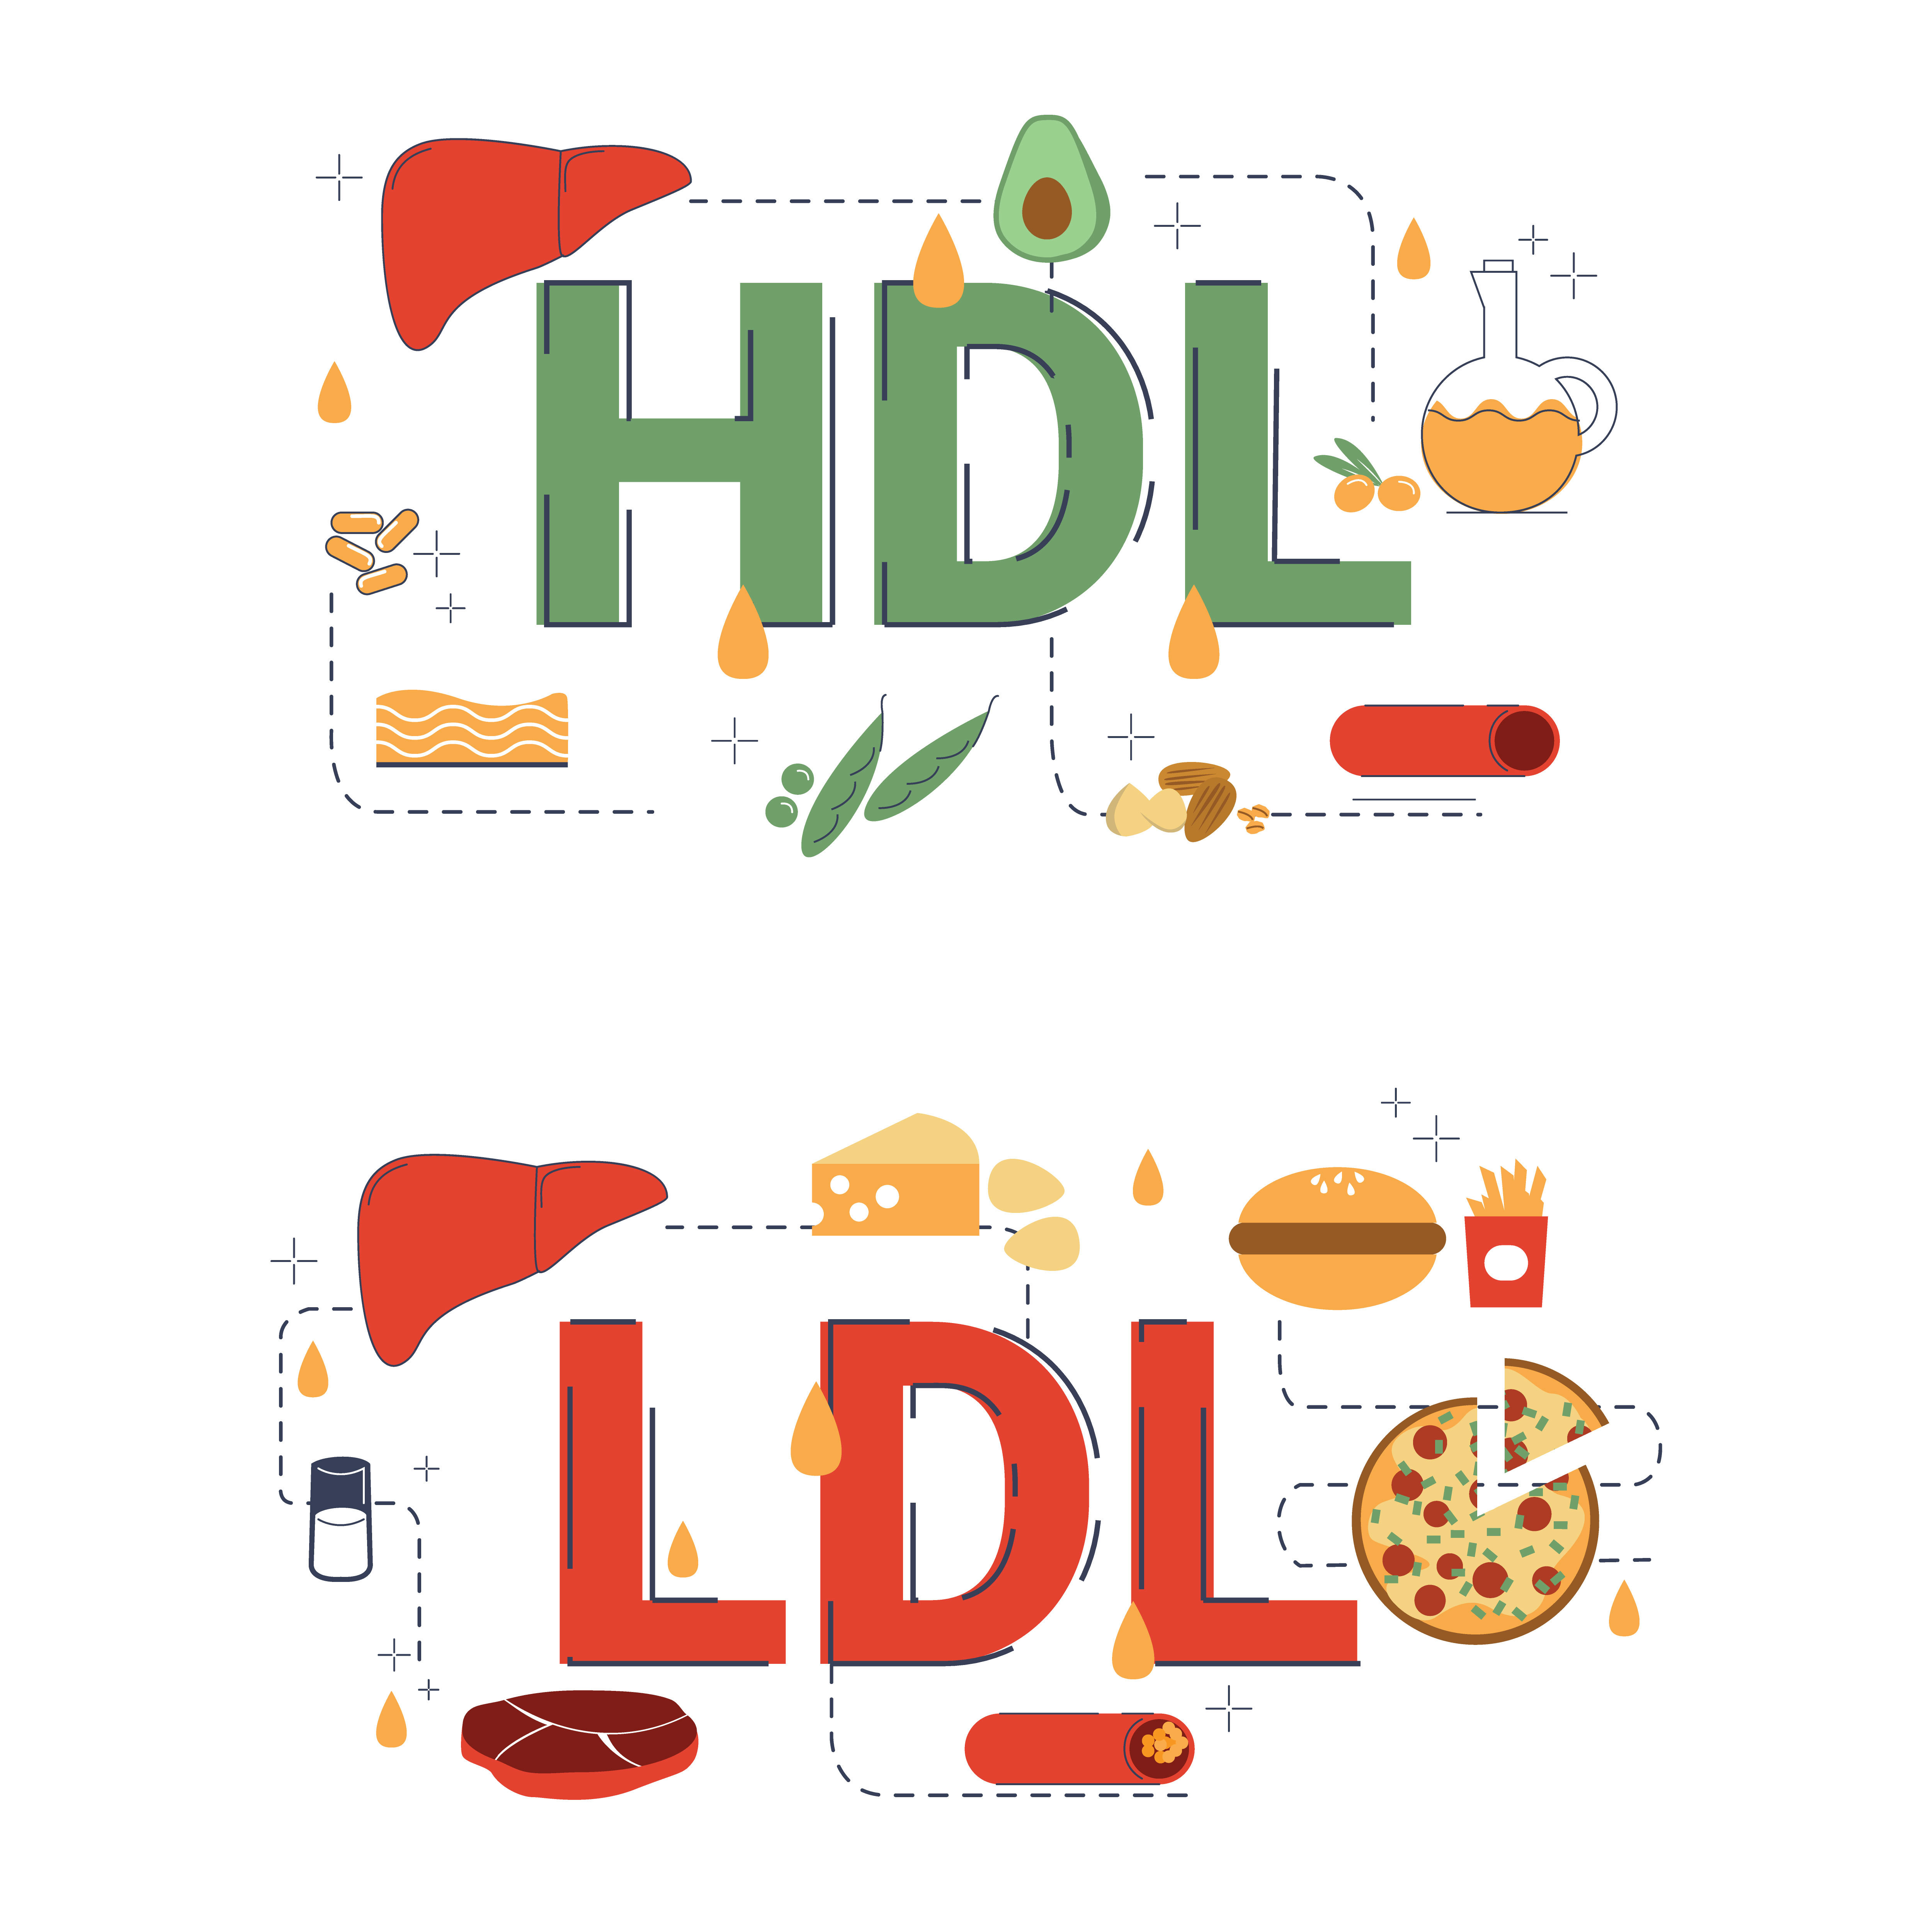 Which products increase HDL level, and which products increase LDL level?